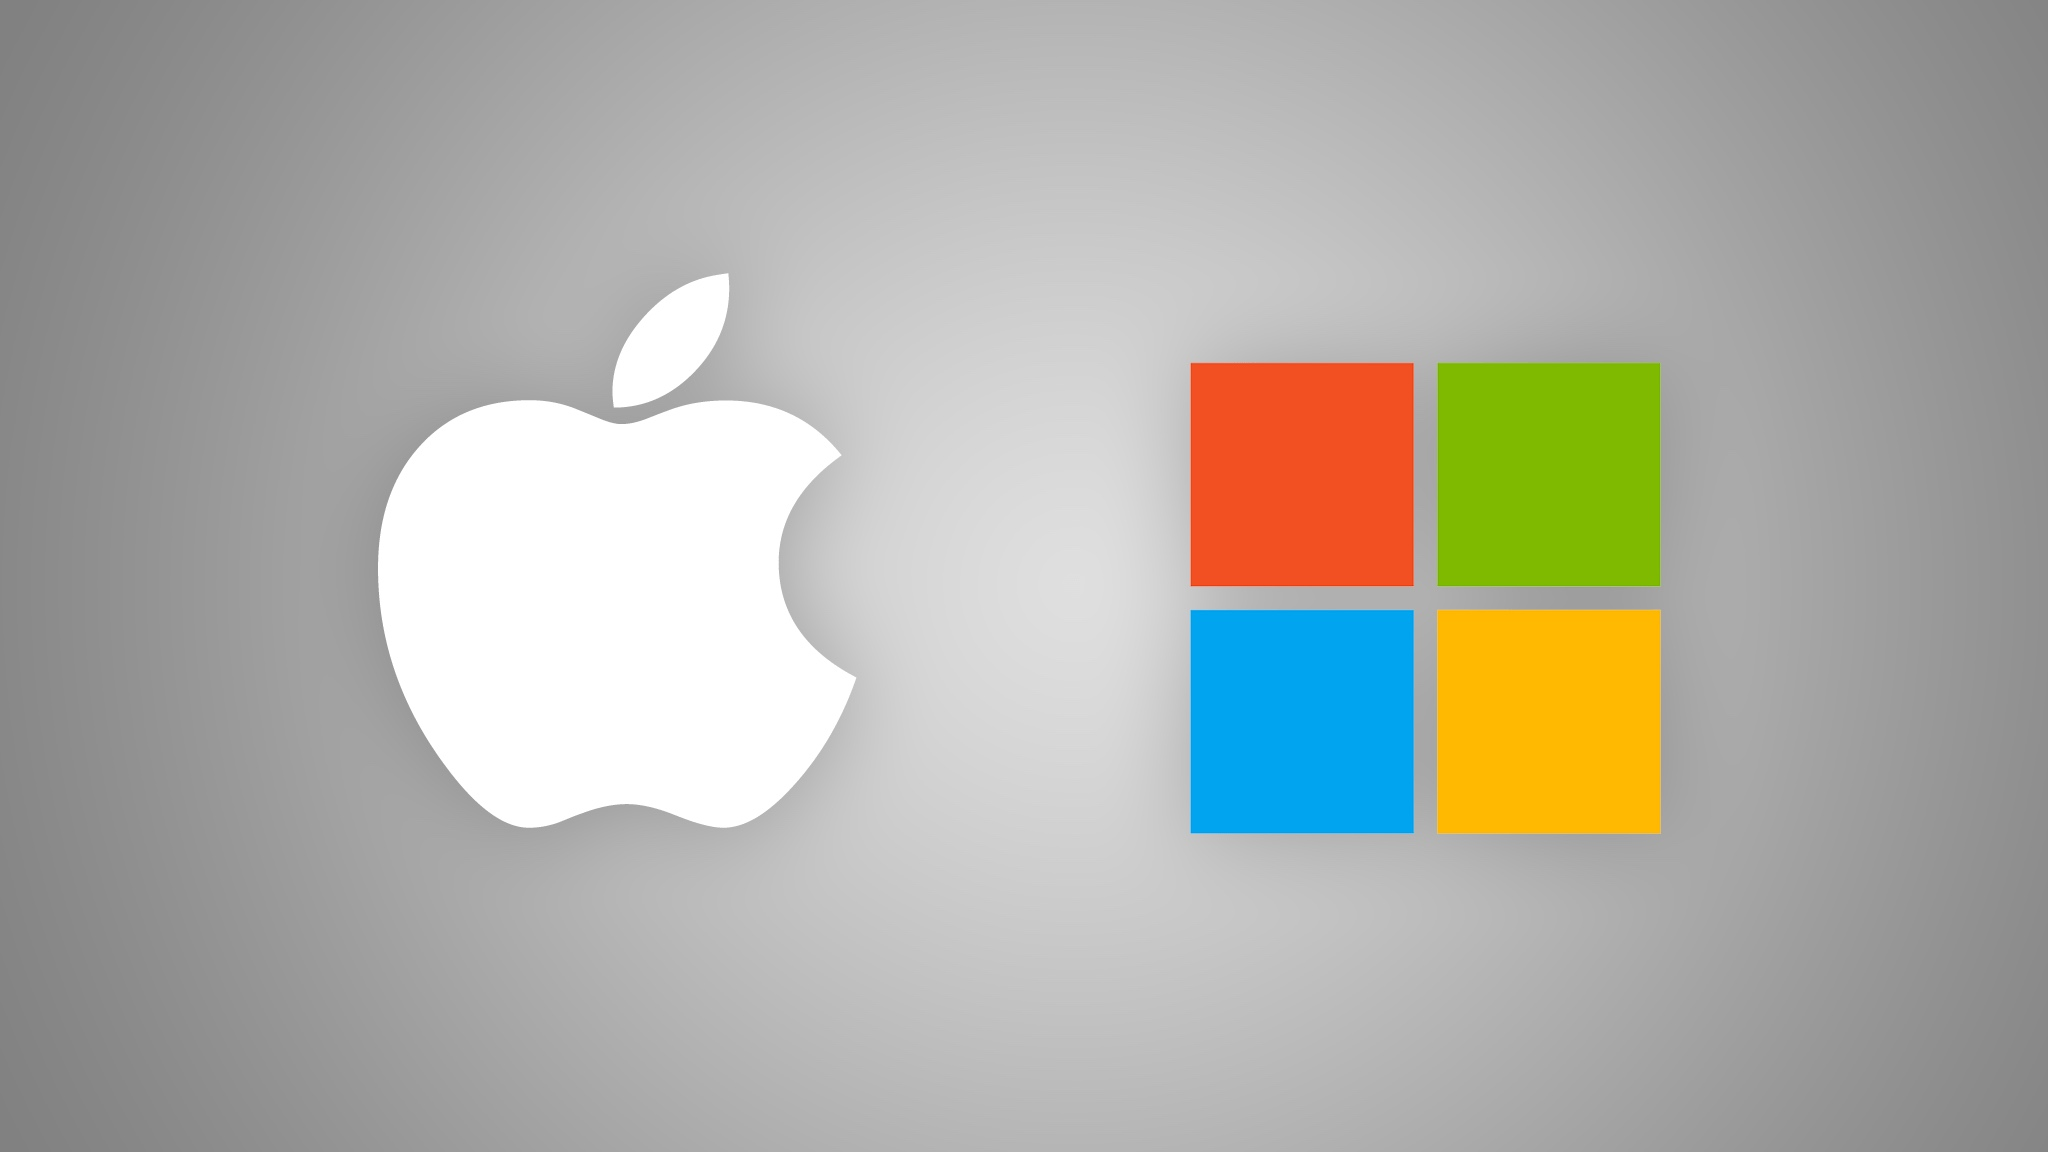 apple-vs-microsoft-fanok-cover2